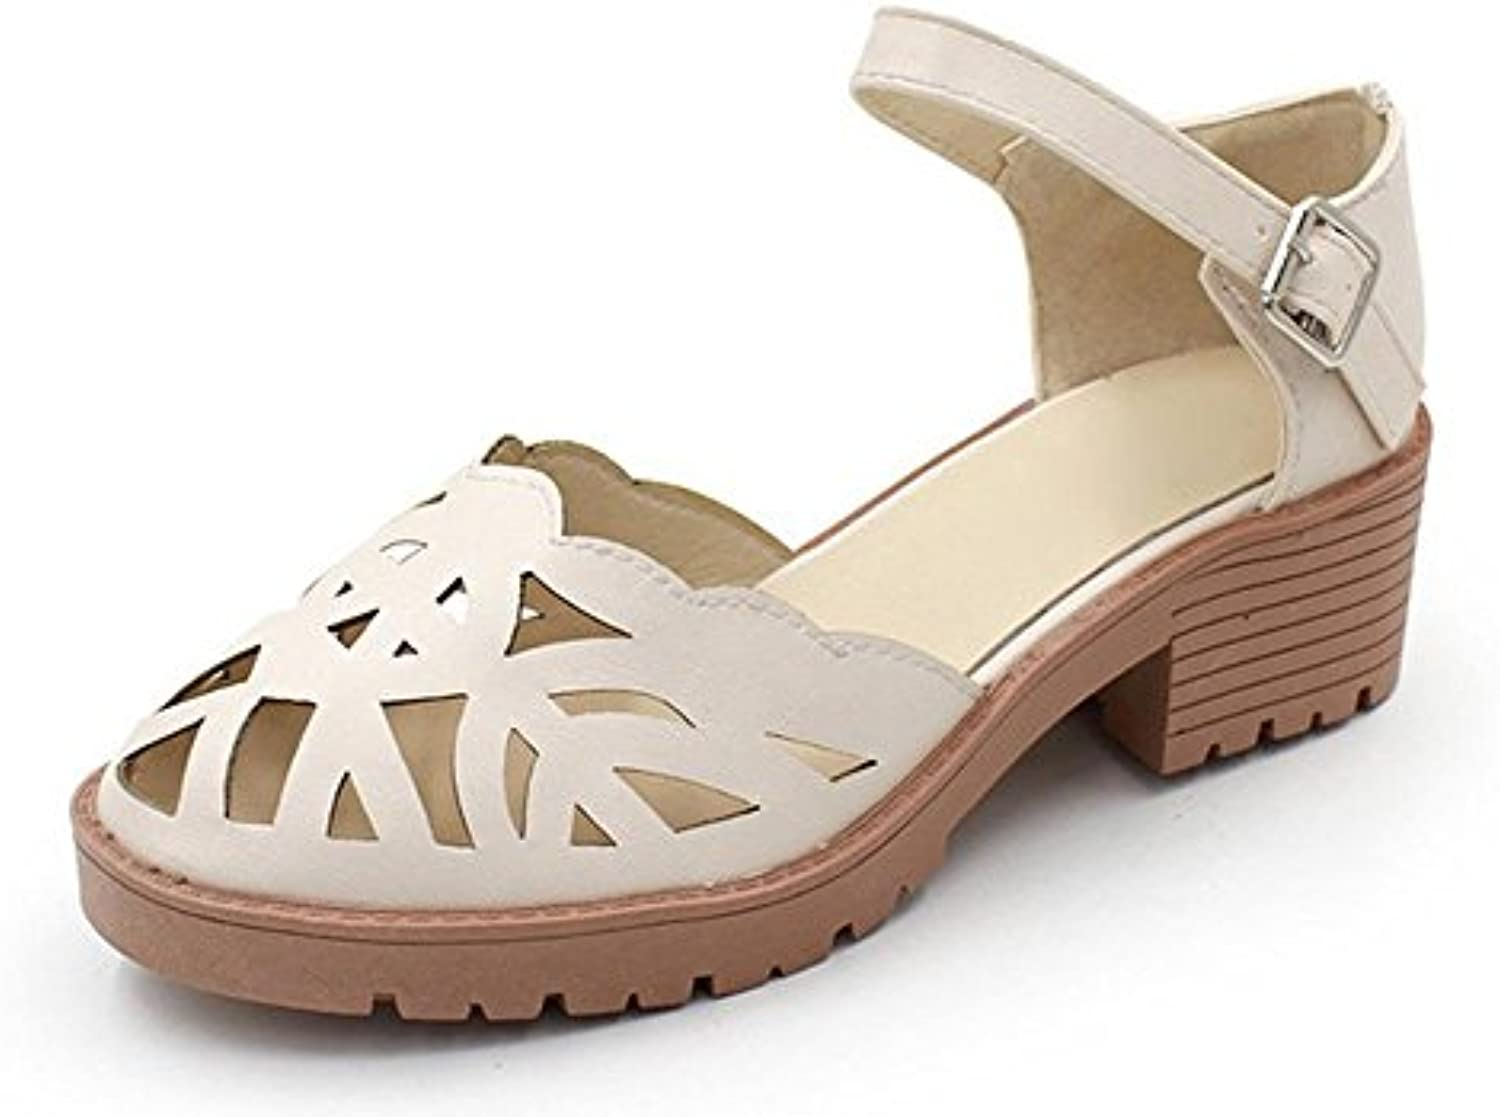 989049dfe057 Summer wild female sandals Baotou with a a a single shoe hollow round  button buckle casual shoes B072KXNYM8